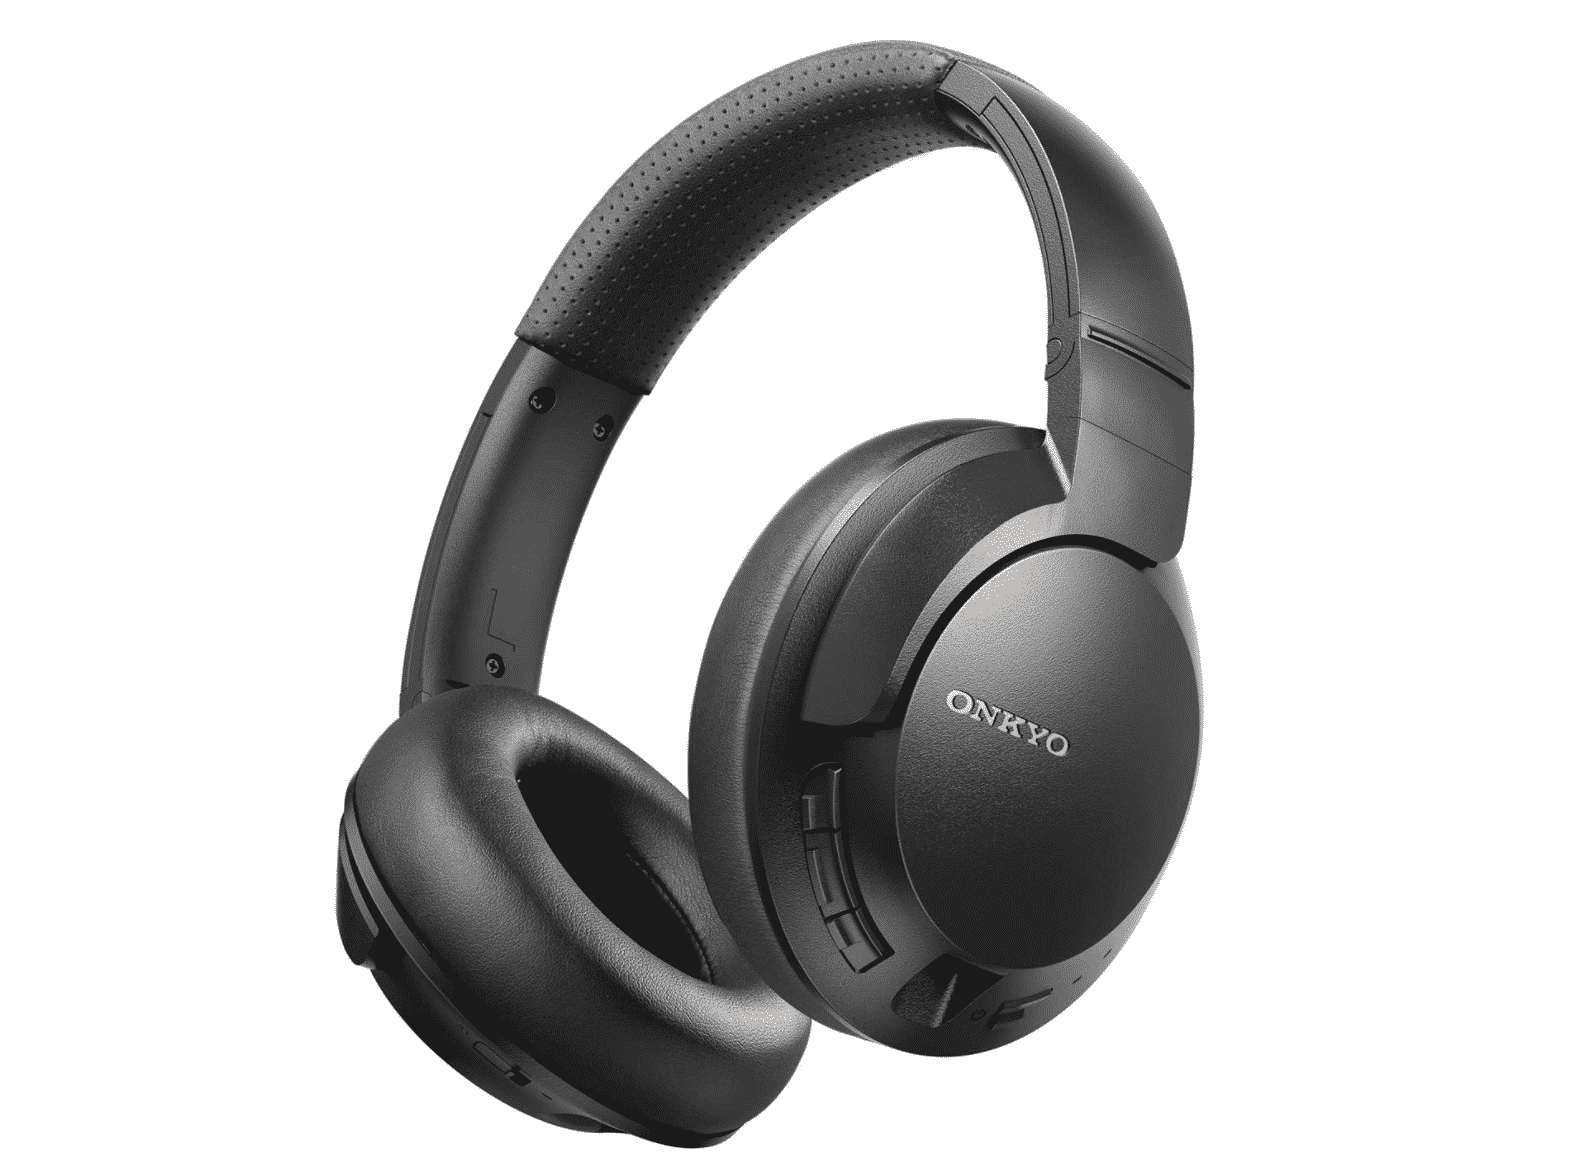 Onkyo ANC Wireless Headphones